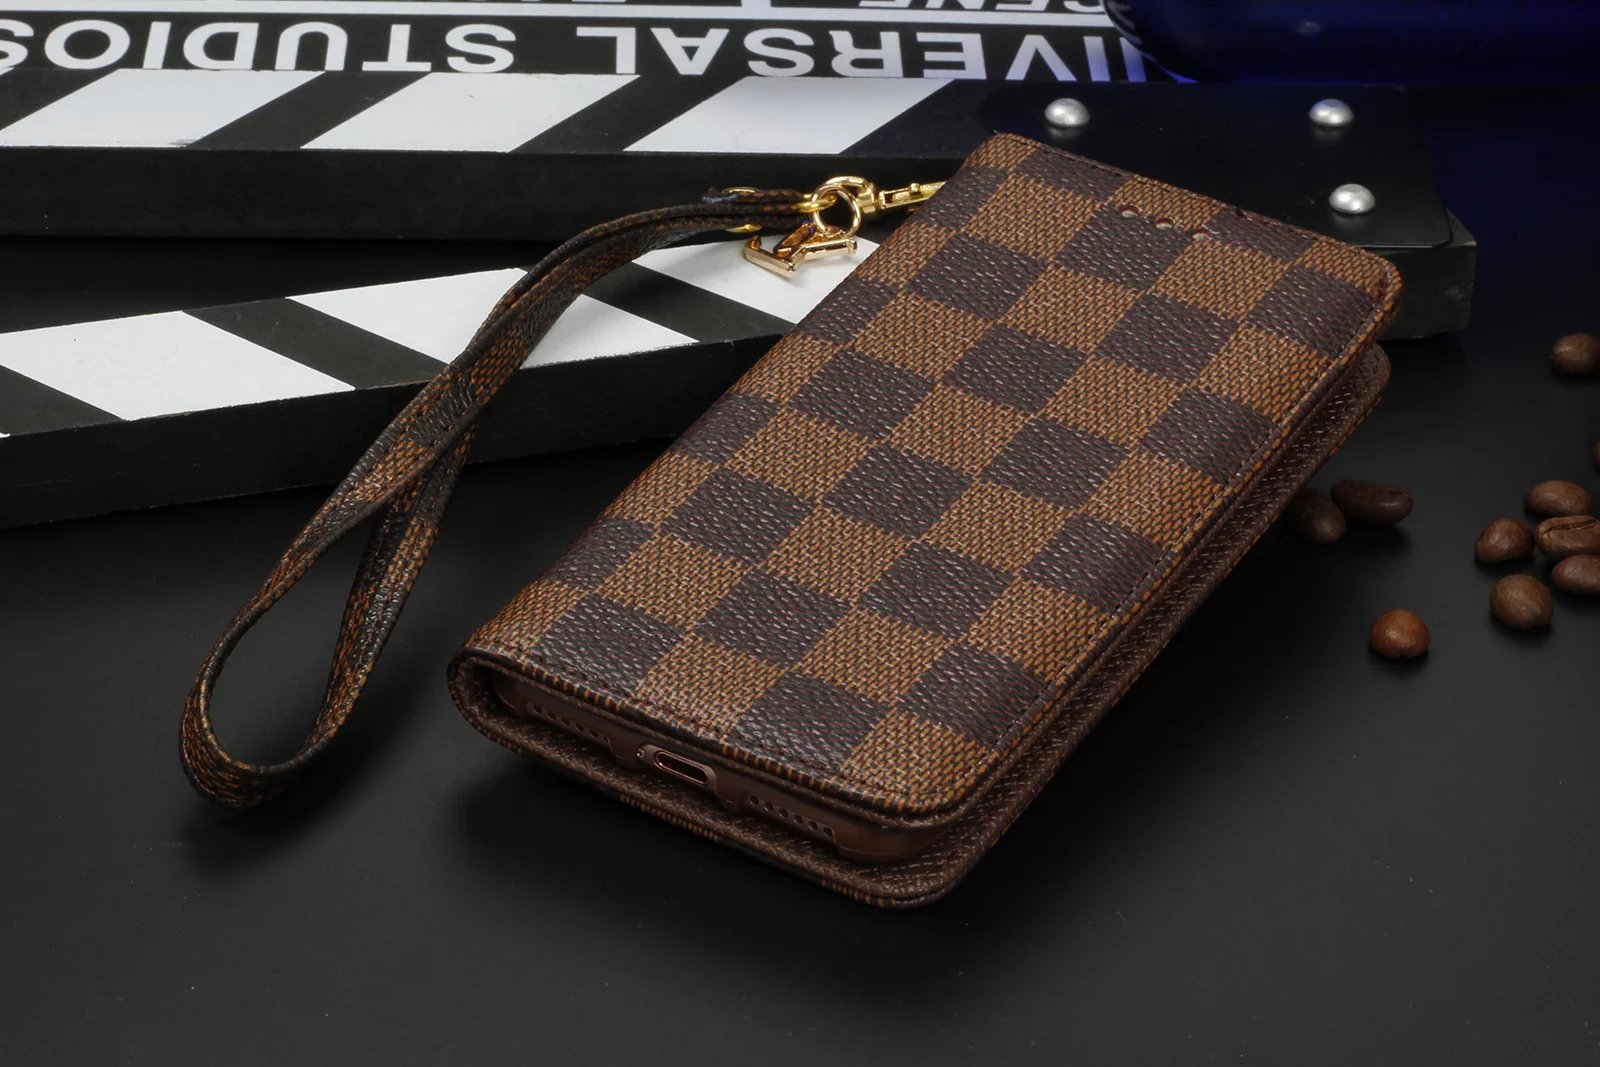 iphone hülle bedrucken iphone case foto Louis Vuitton iphone7 hülle handyhülle s7 neuestes iphone 6 wann kommt iphone 6 apple iphone 7 schutzhülle apple iphone 7 oder 6 handyhülle samsung galaxy s7 7lbst gestalten